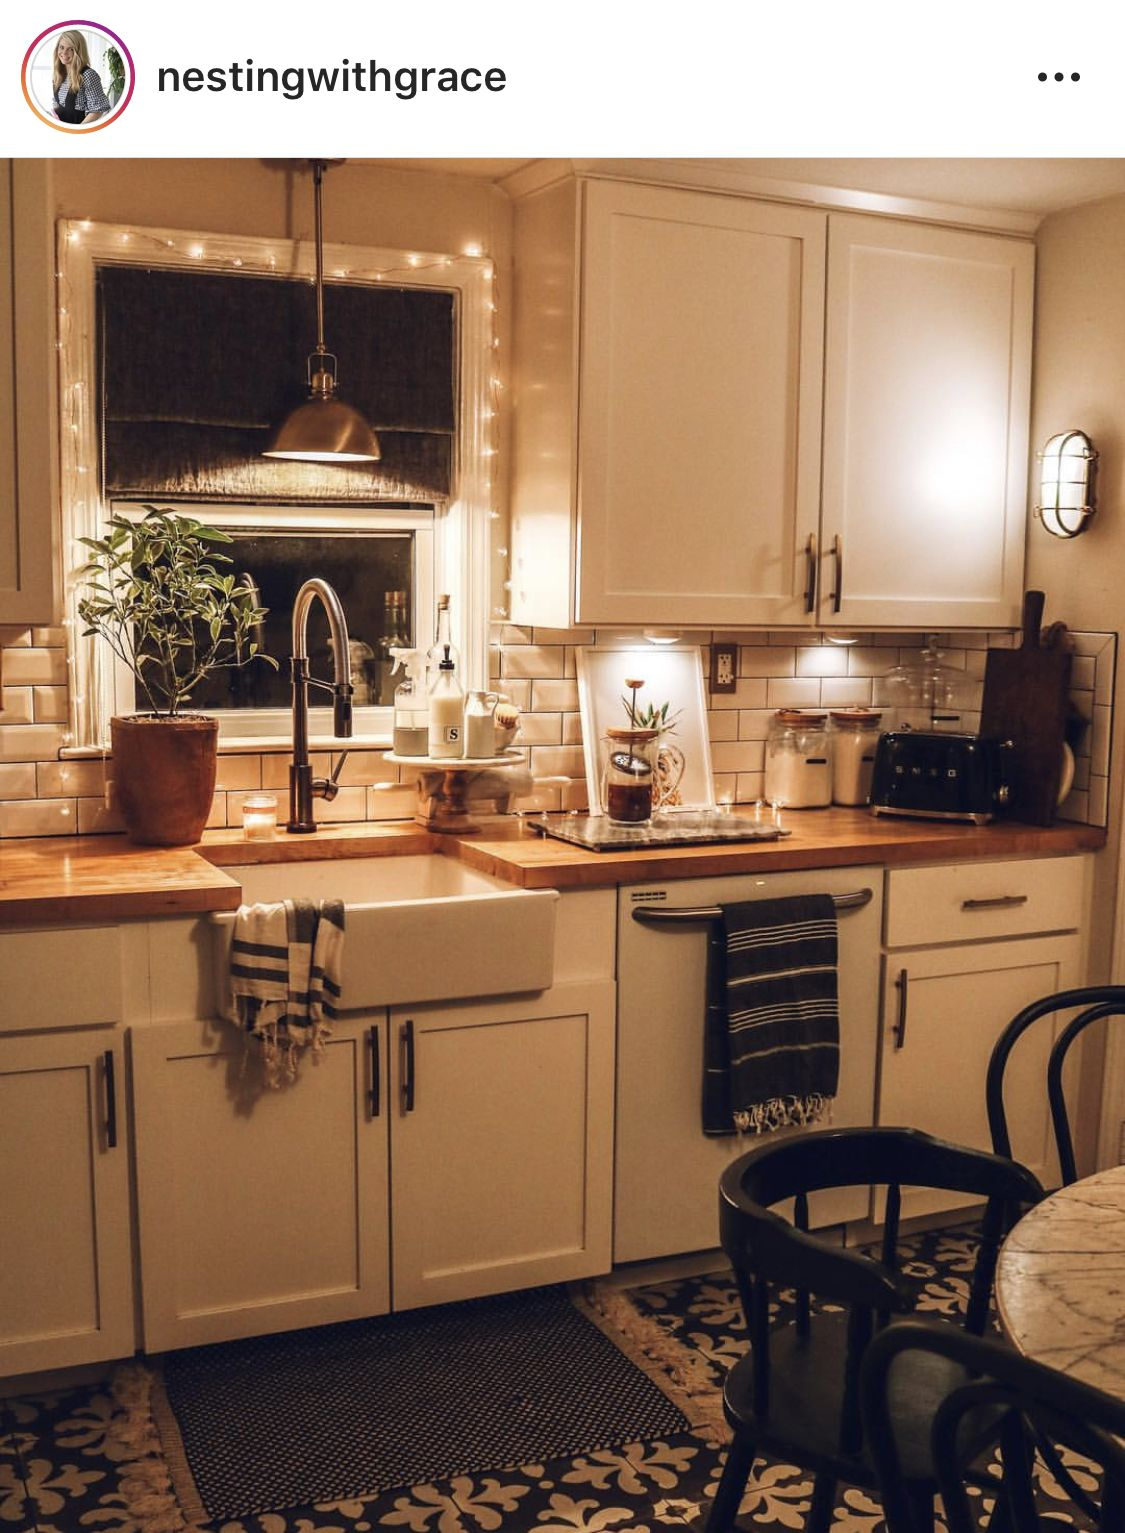 Twinkle Lights Around The Kitchen Window Battery Operated Push Lights Under Cabinets Light Kitchen Cabinets Kitchen Decor Home Decor Kitchen